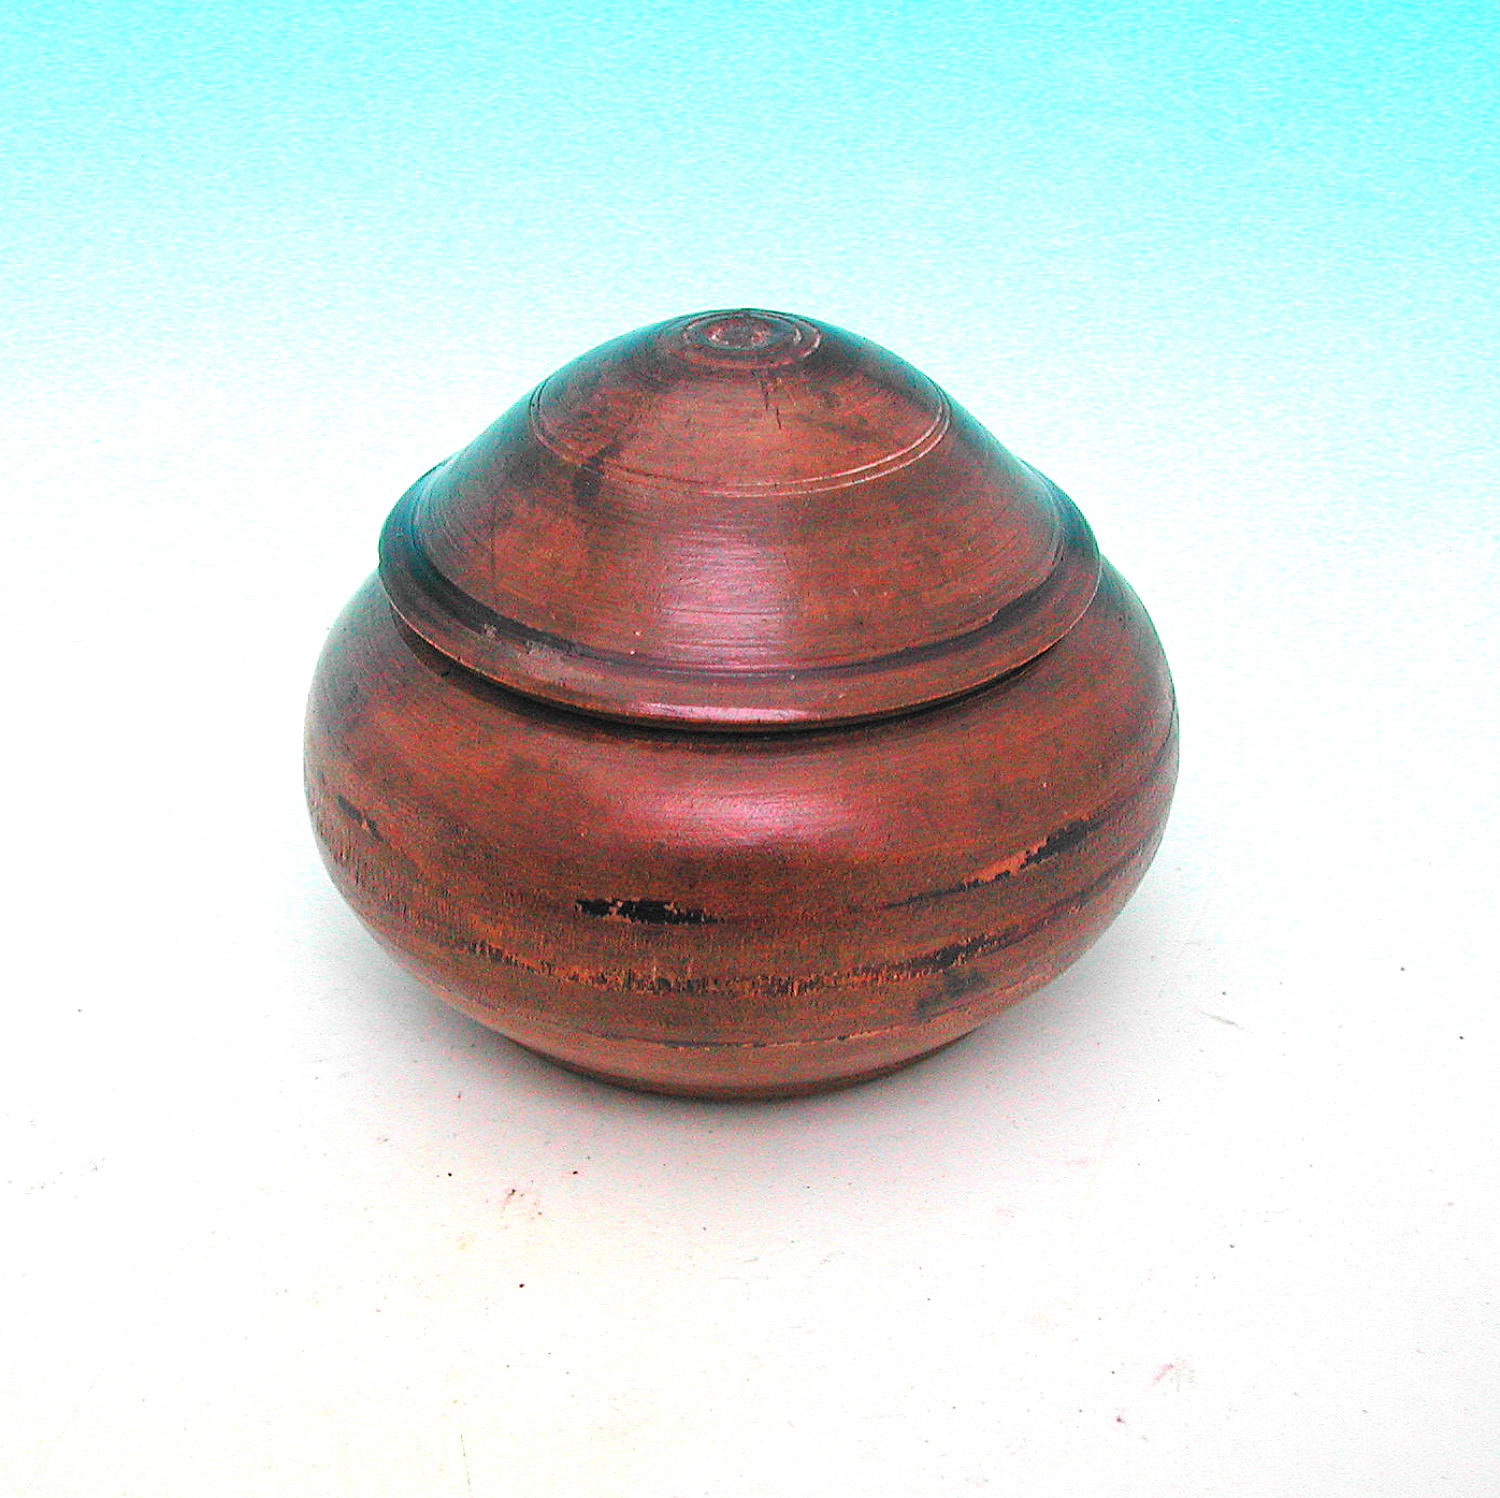 Antique 19thc Treen Sycamore Lidded Pot Dated 1849.  Scandinavian